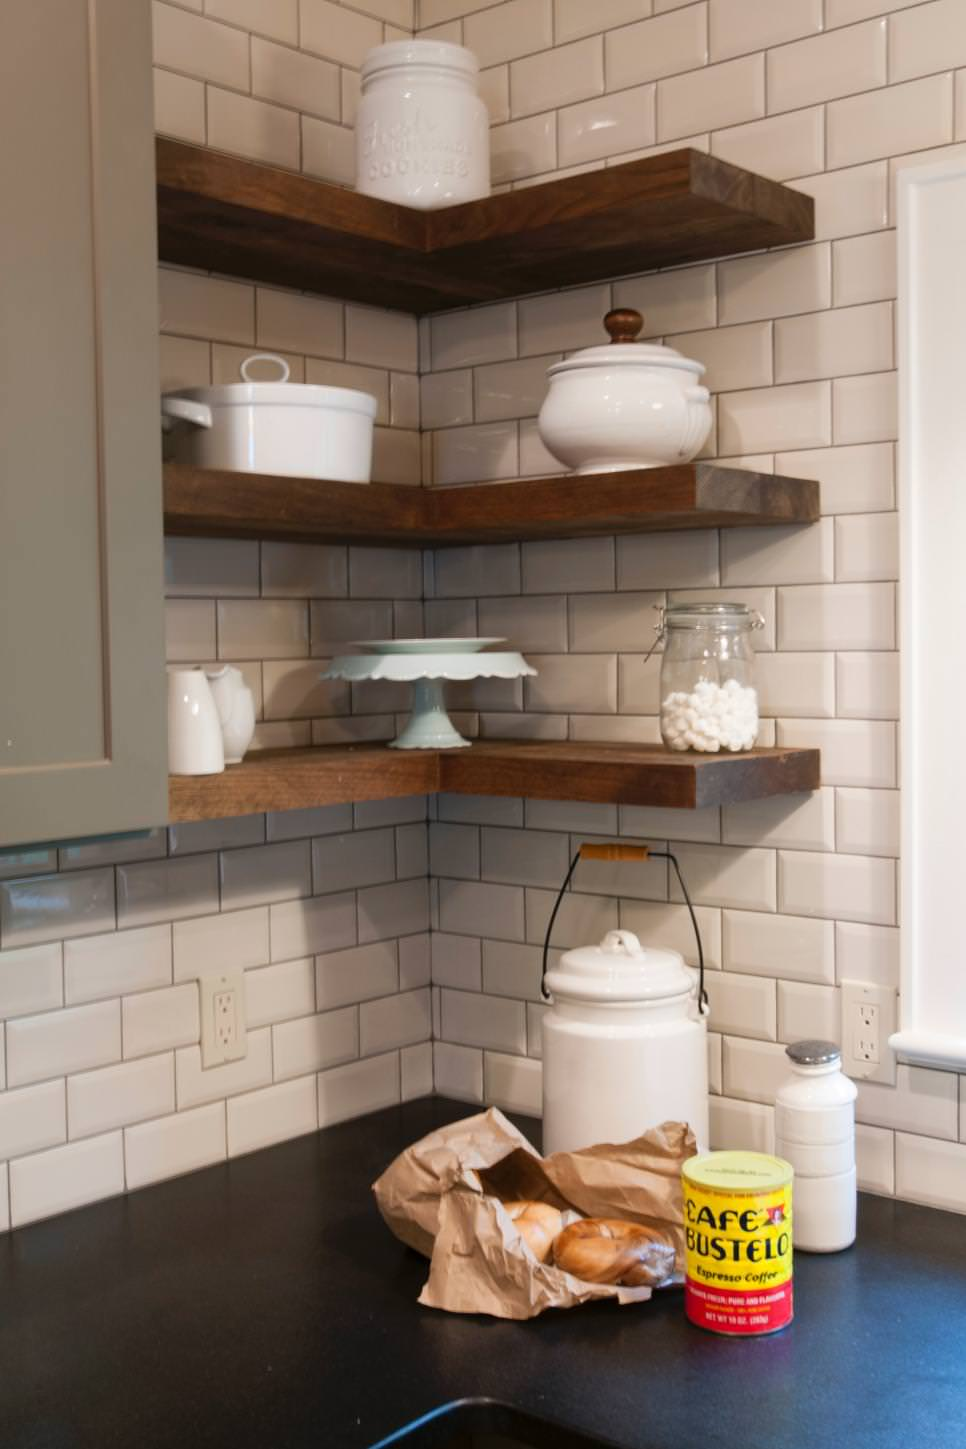 corner wall hanging shelves designs 25 kitchen shelves designs decorating ideas design trends - Wall Hanging Shelves Design